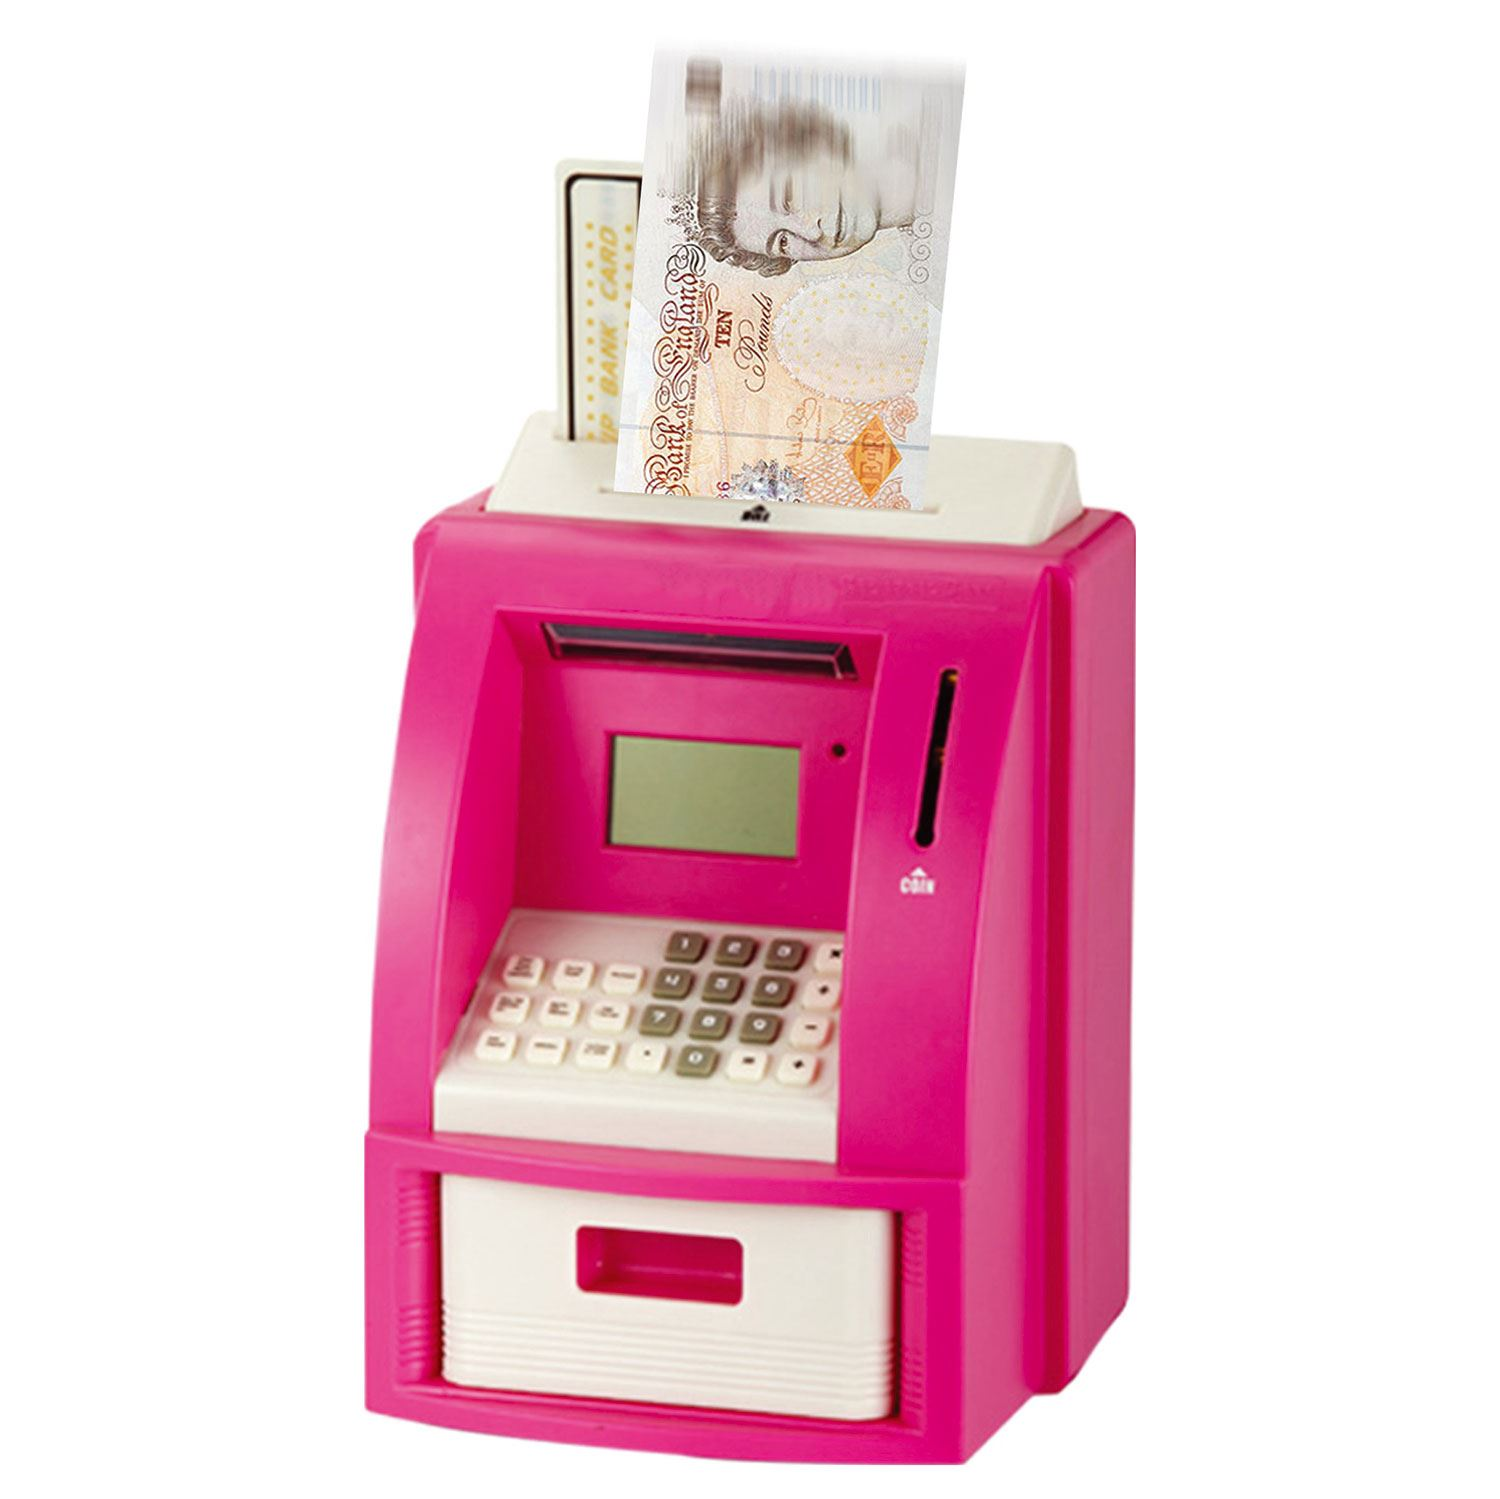 Digital coin counter lcd display jumbo jar sorter money box counts coins ebay - Coin sorting piggy bank ...